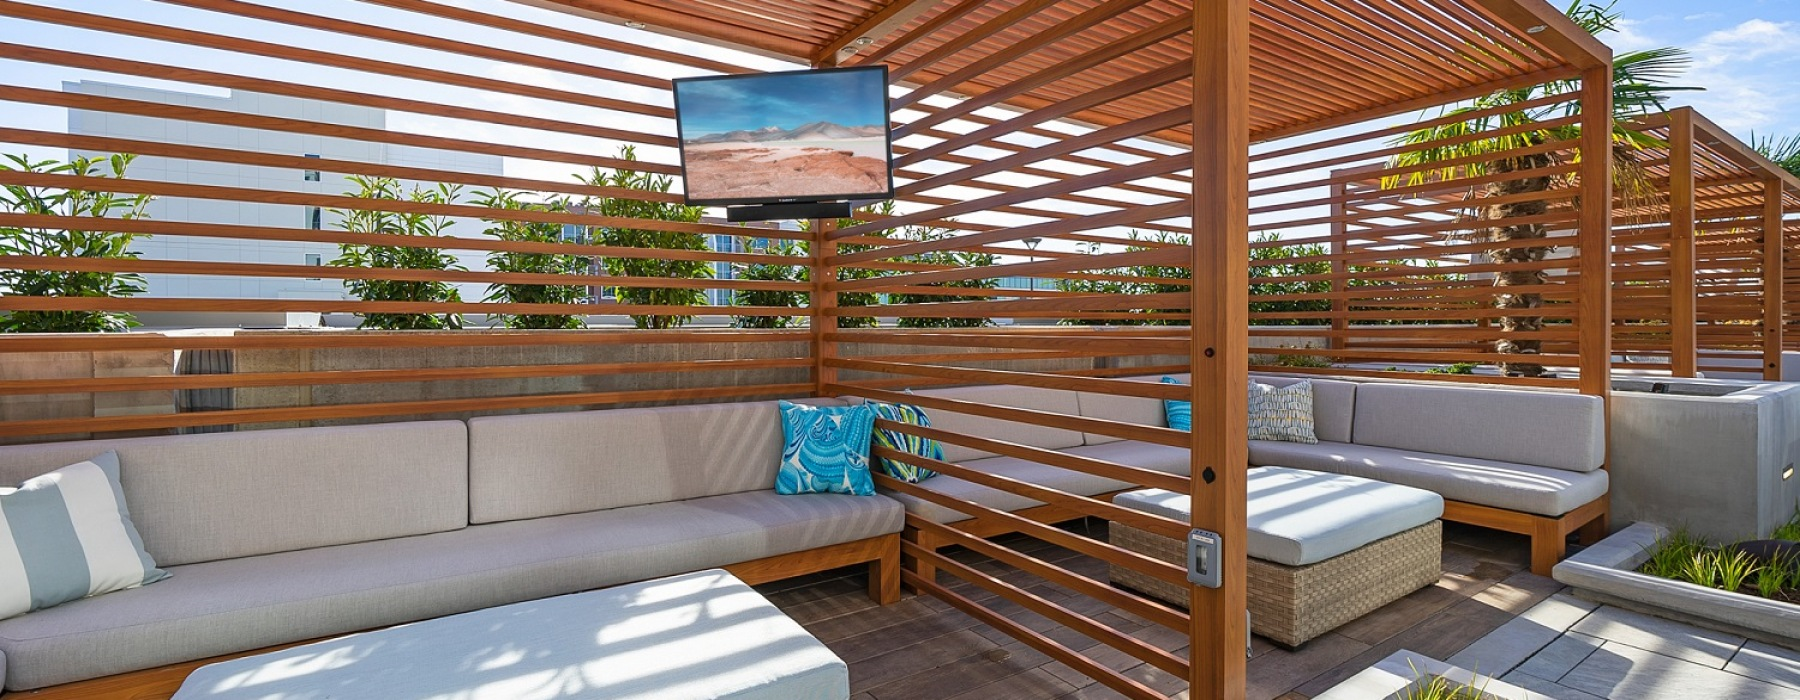 Cabanas with Seating and Televisions